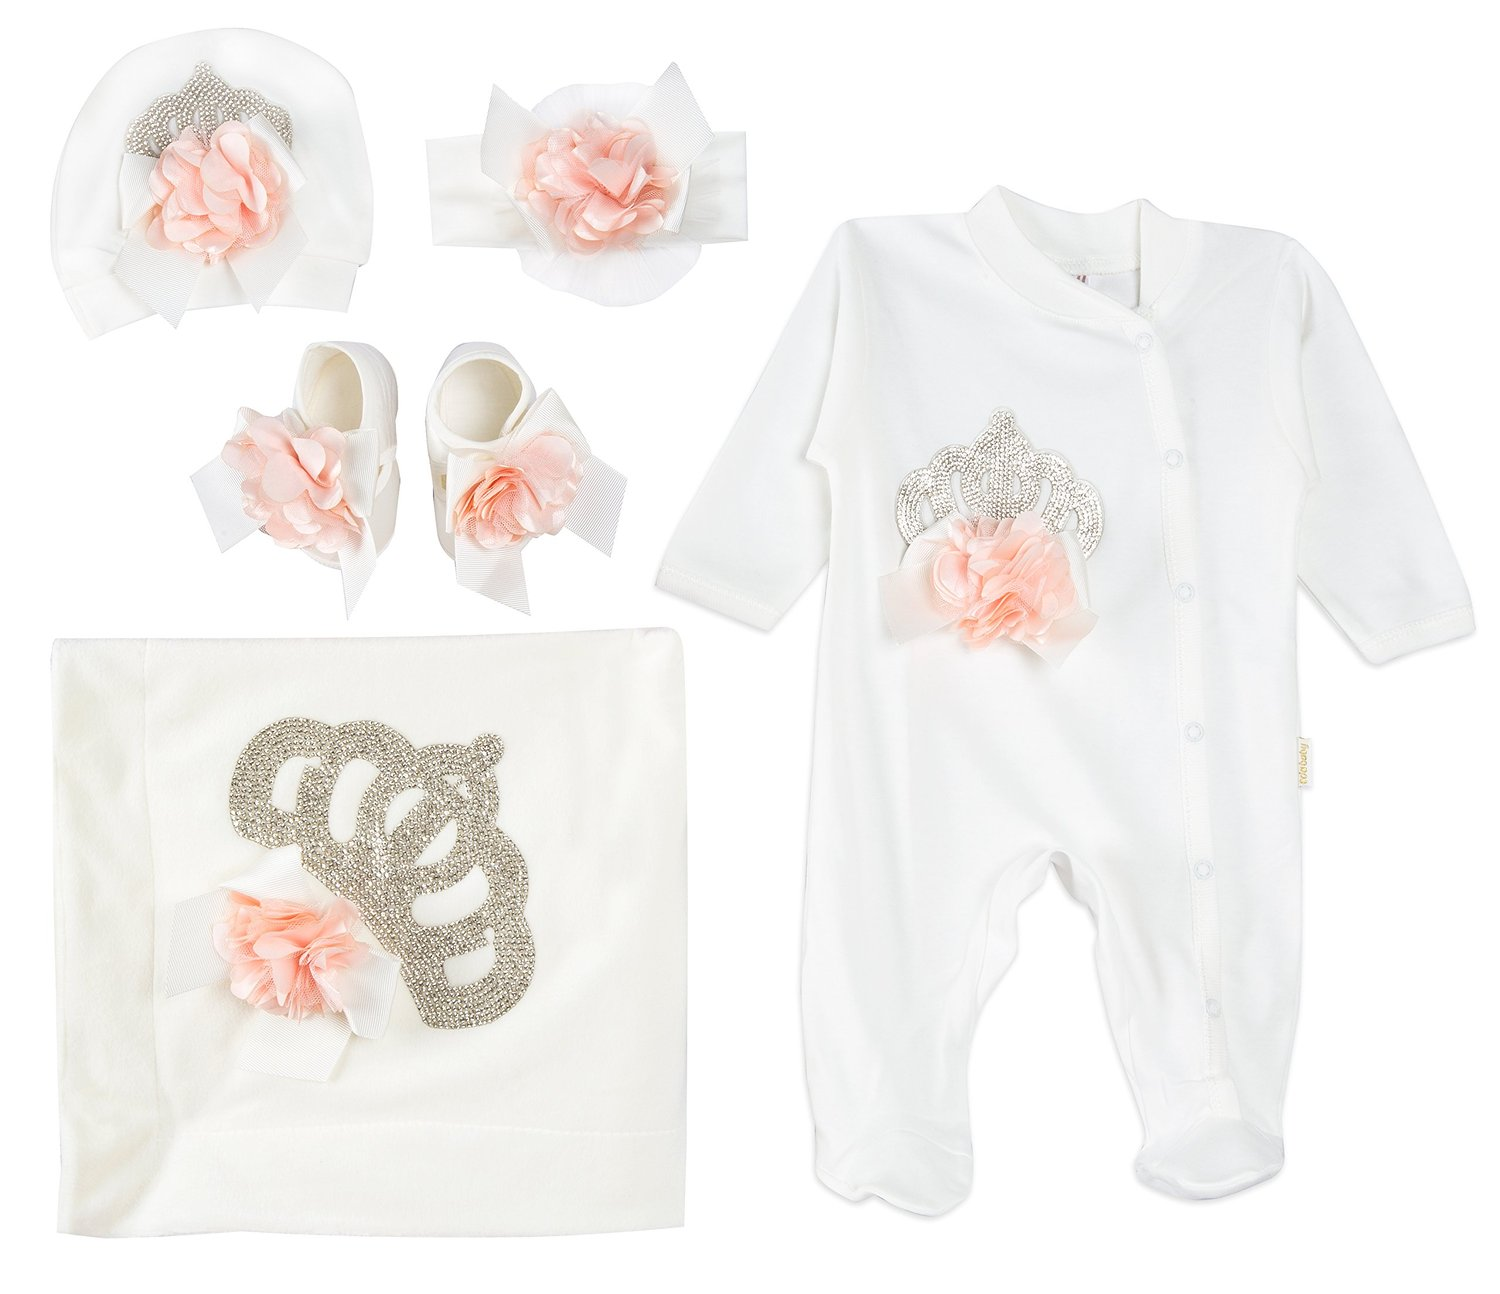 0a6998e7af45 The Lilax Baby Girl Jeweled Layette 5 Piece Gift Set comes all nice and  neatly packed in a Lilax box. The box is great for gift giving, as it lays  all the ...